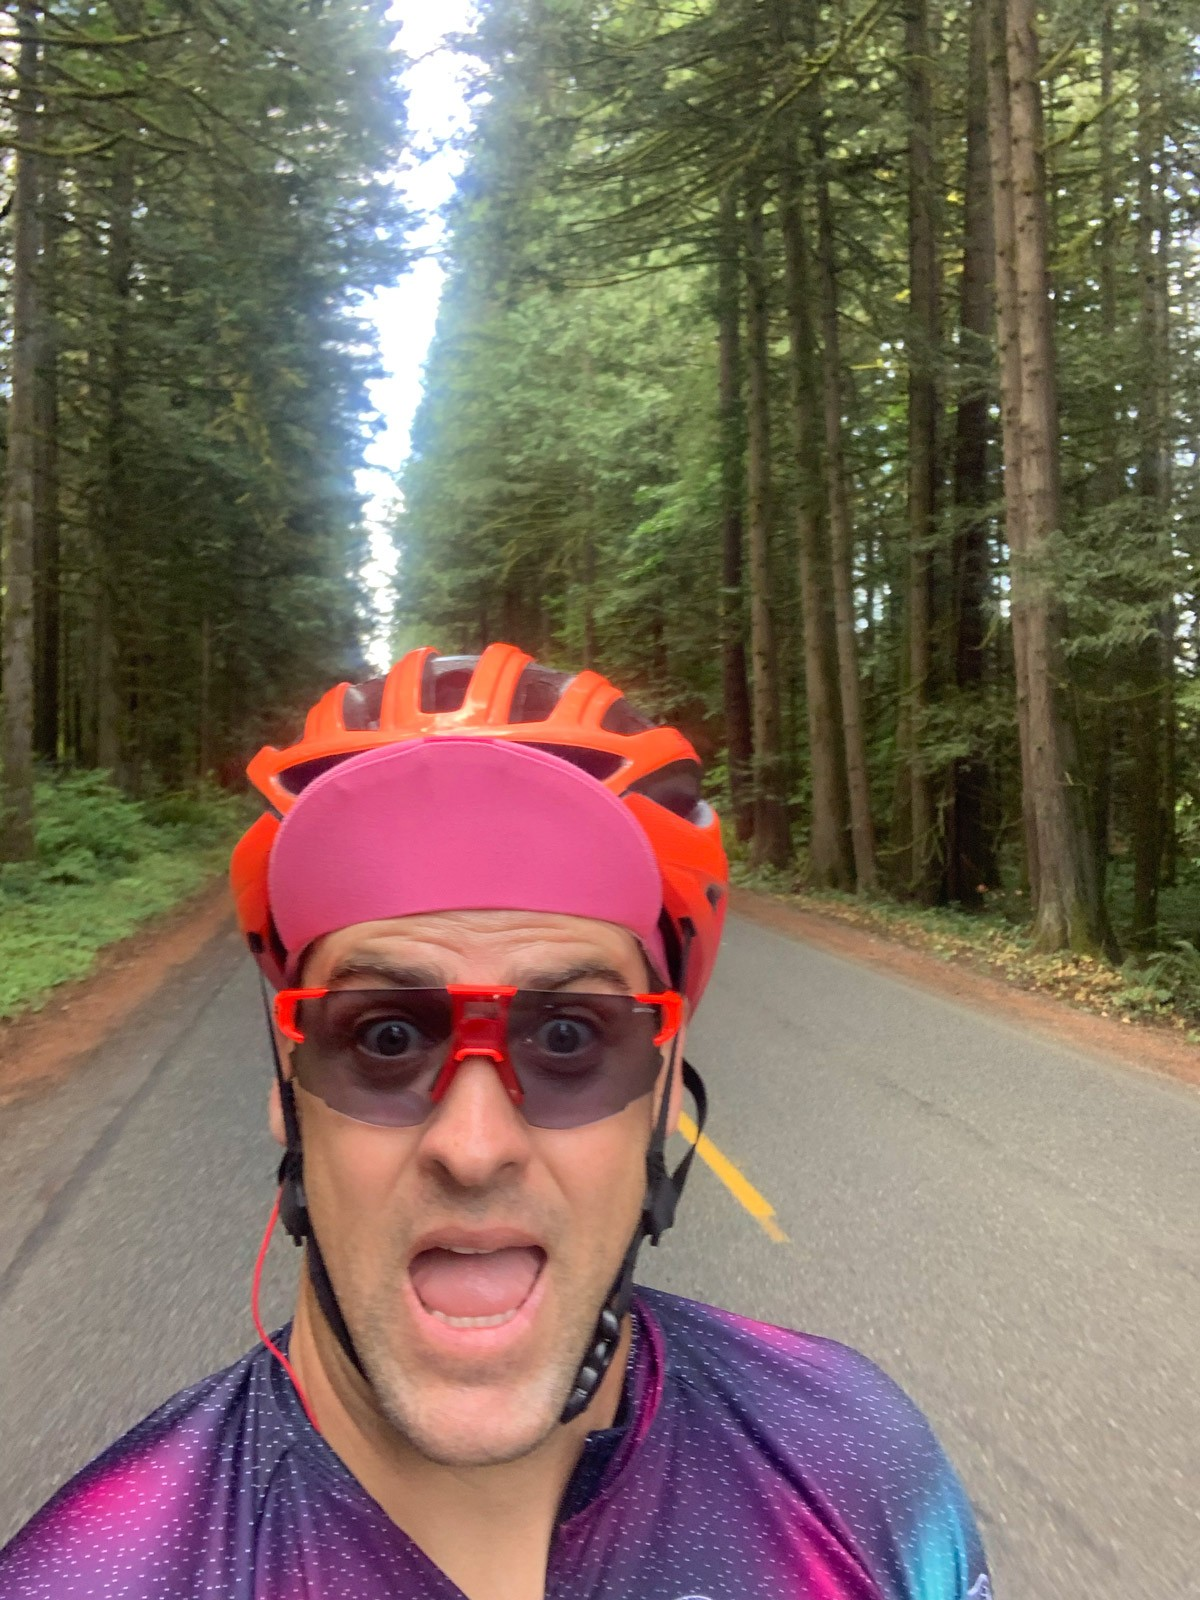 Rob takes a selfie with tree-lined road behind him.